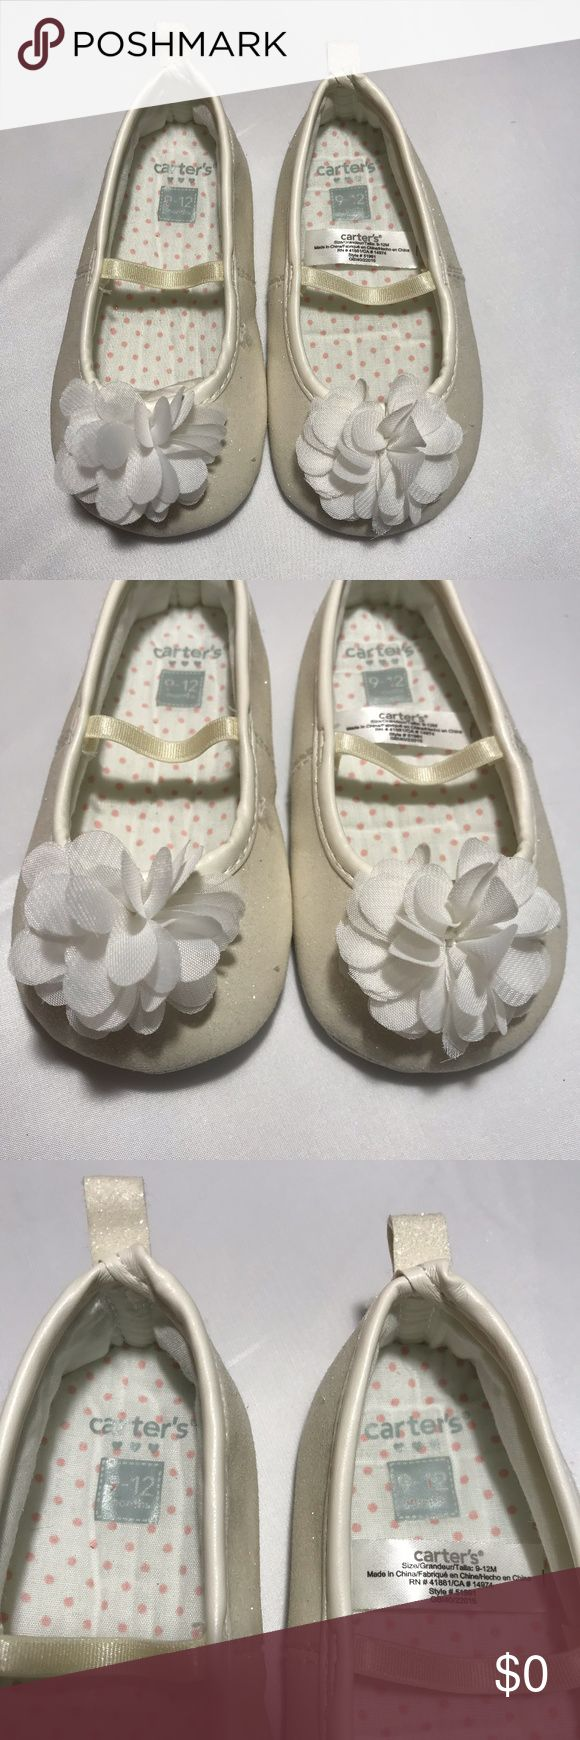 """Carters Slip-on Baby Shoes White Sparkle Flower Girls Carters Slip-on Baby Shoes White Sparkle Flower 9-12m Measurements 5.25"""" Heel to Toe 2.5"""" Wide Excellent Condition no Flaws Carter's Shoes"""